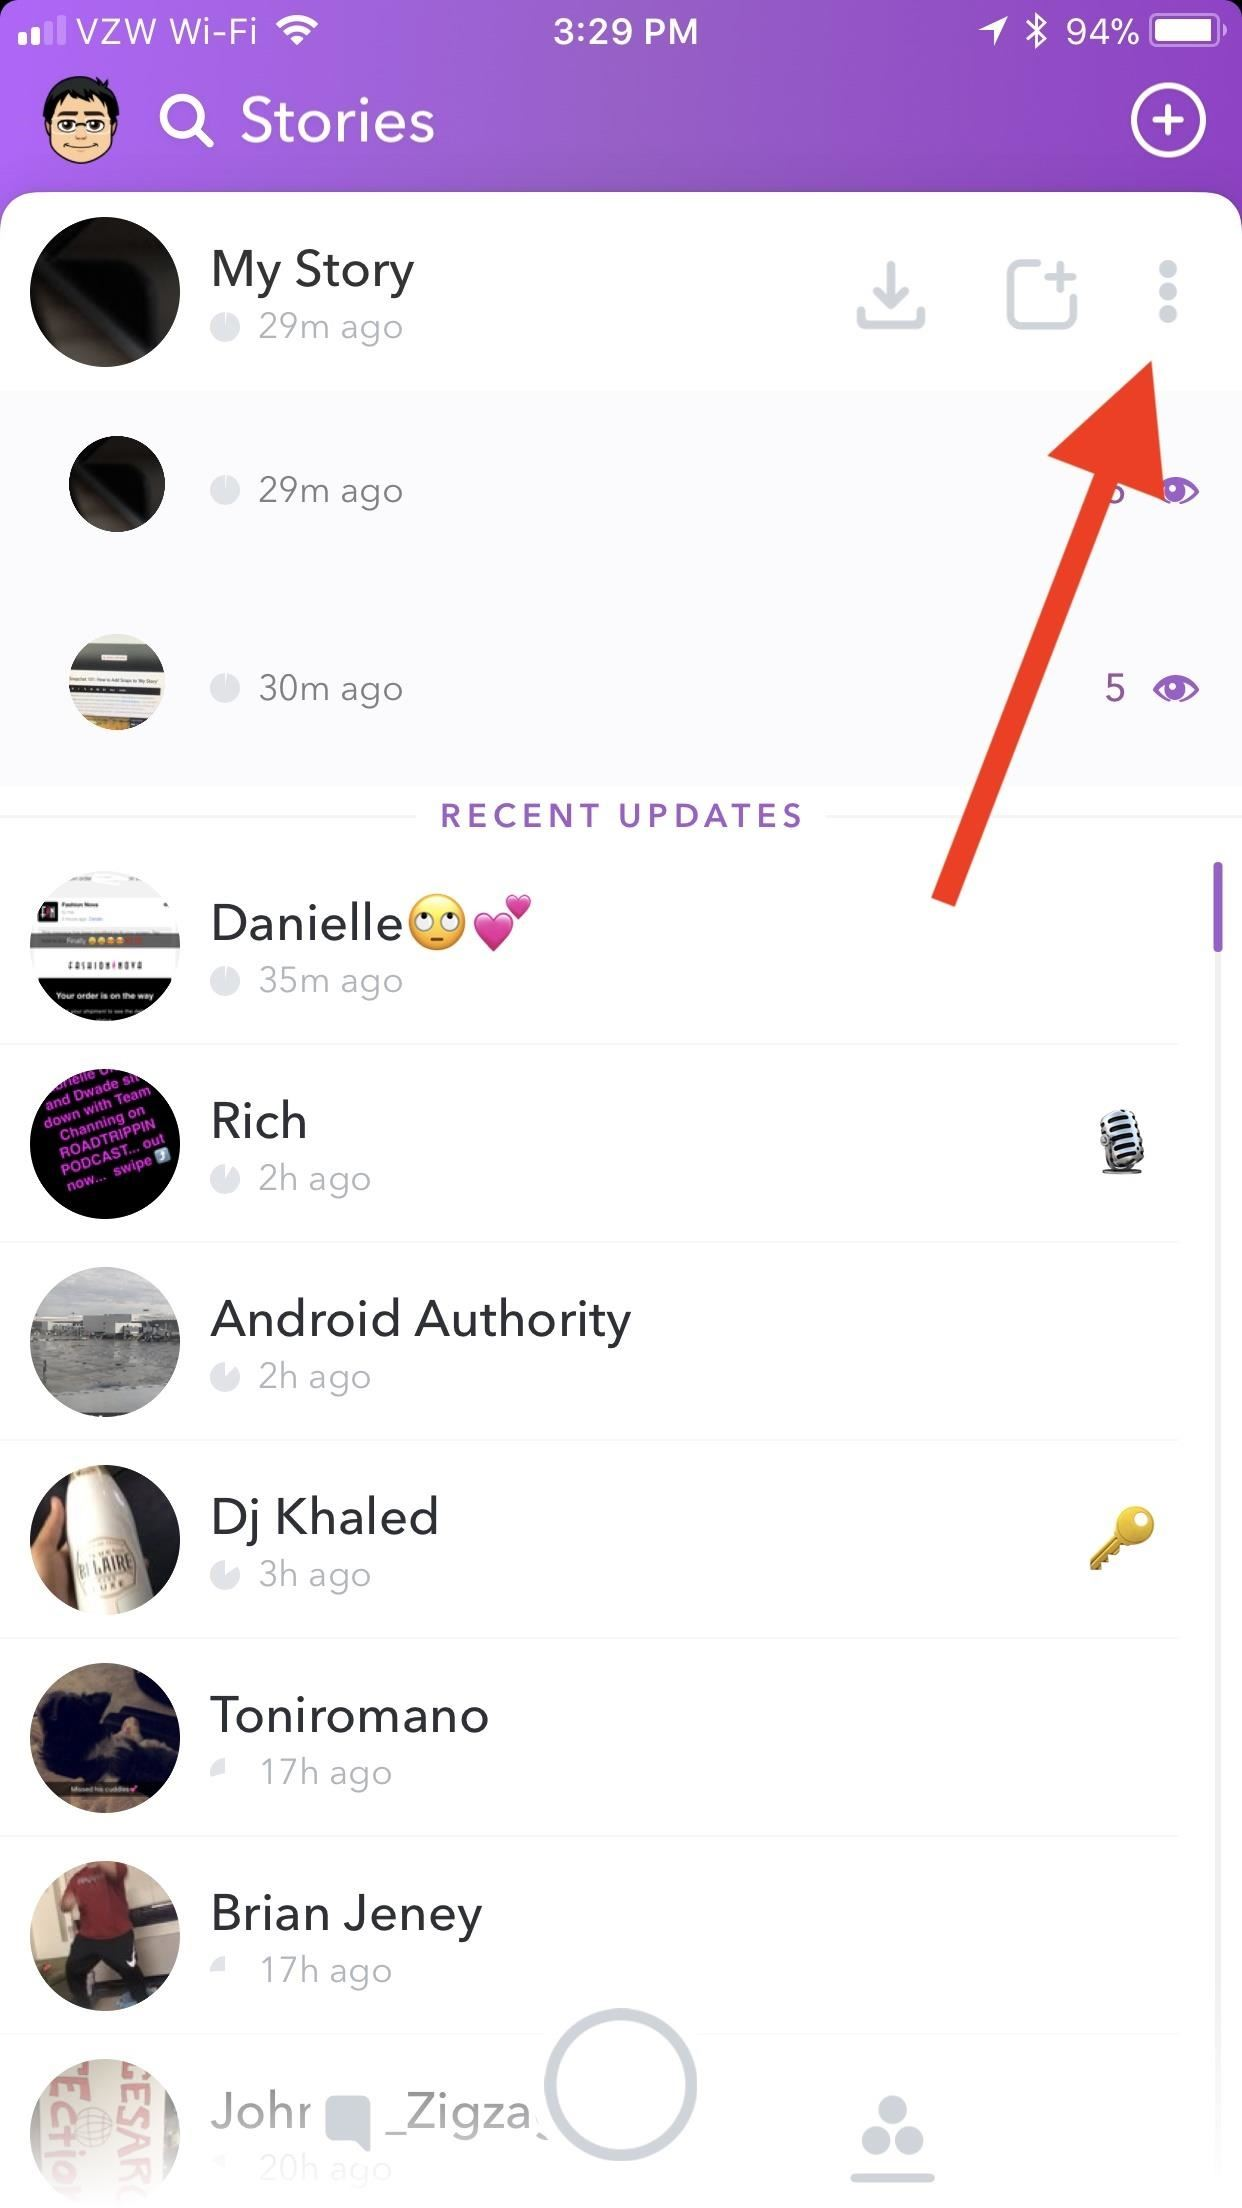 Snapchat 101: How to Add or Remove Snaps from 'My Story'